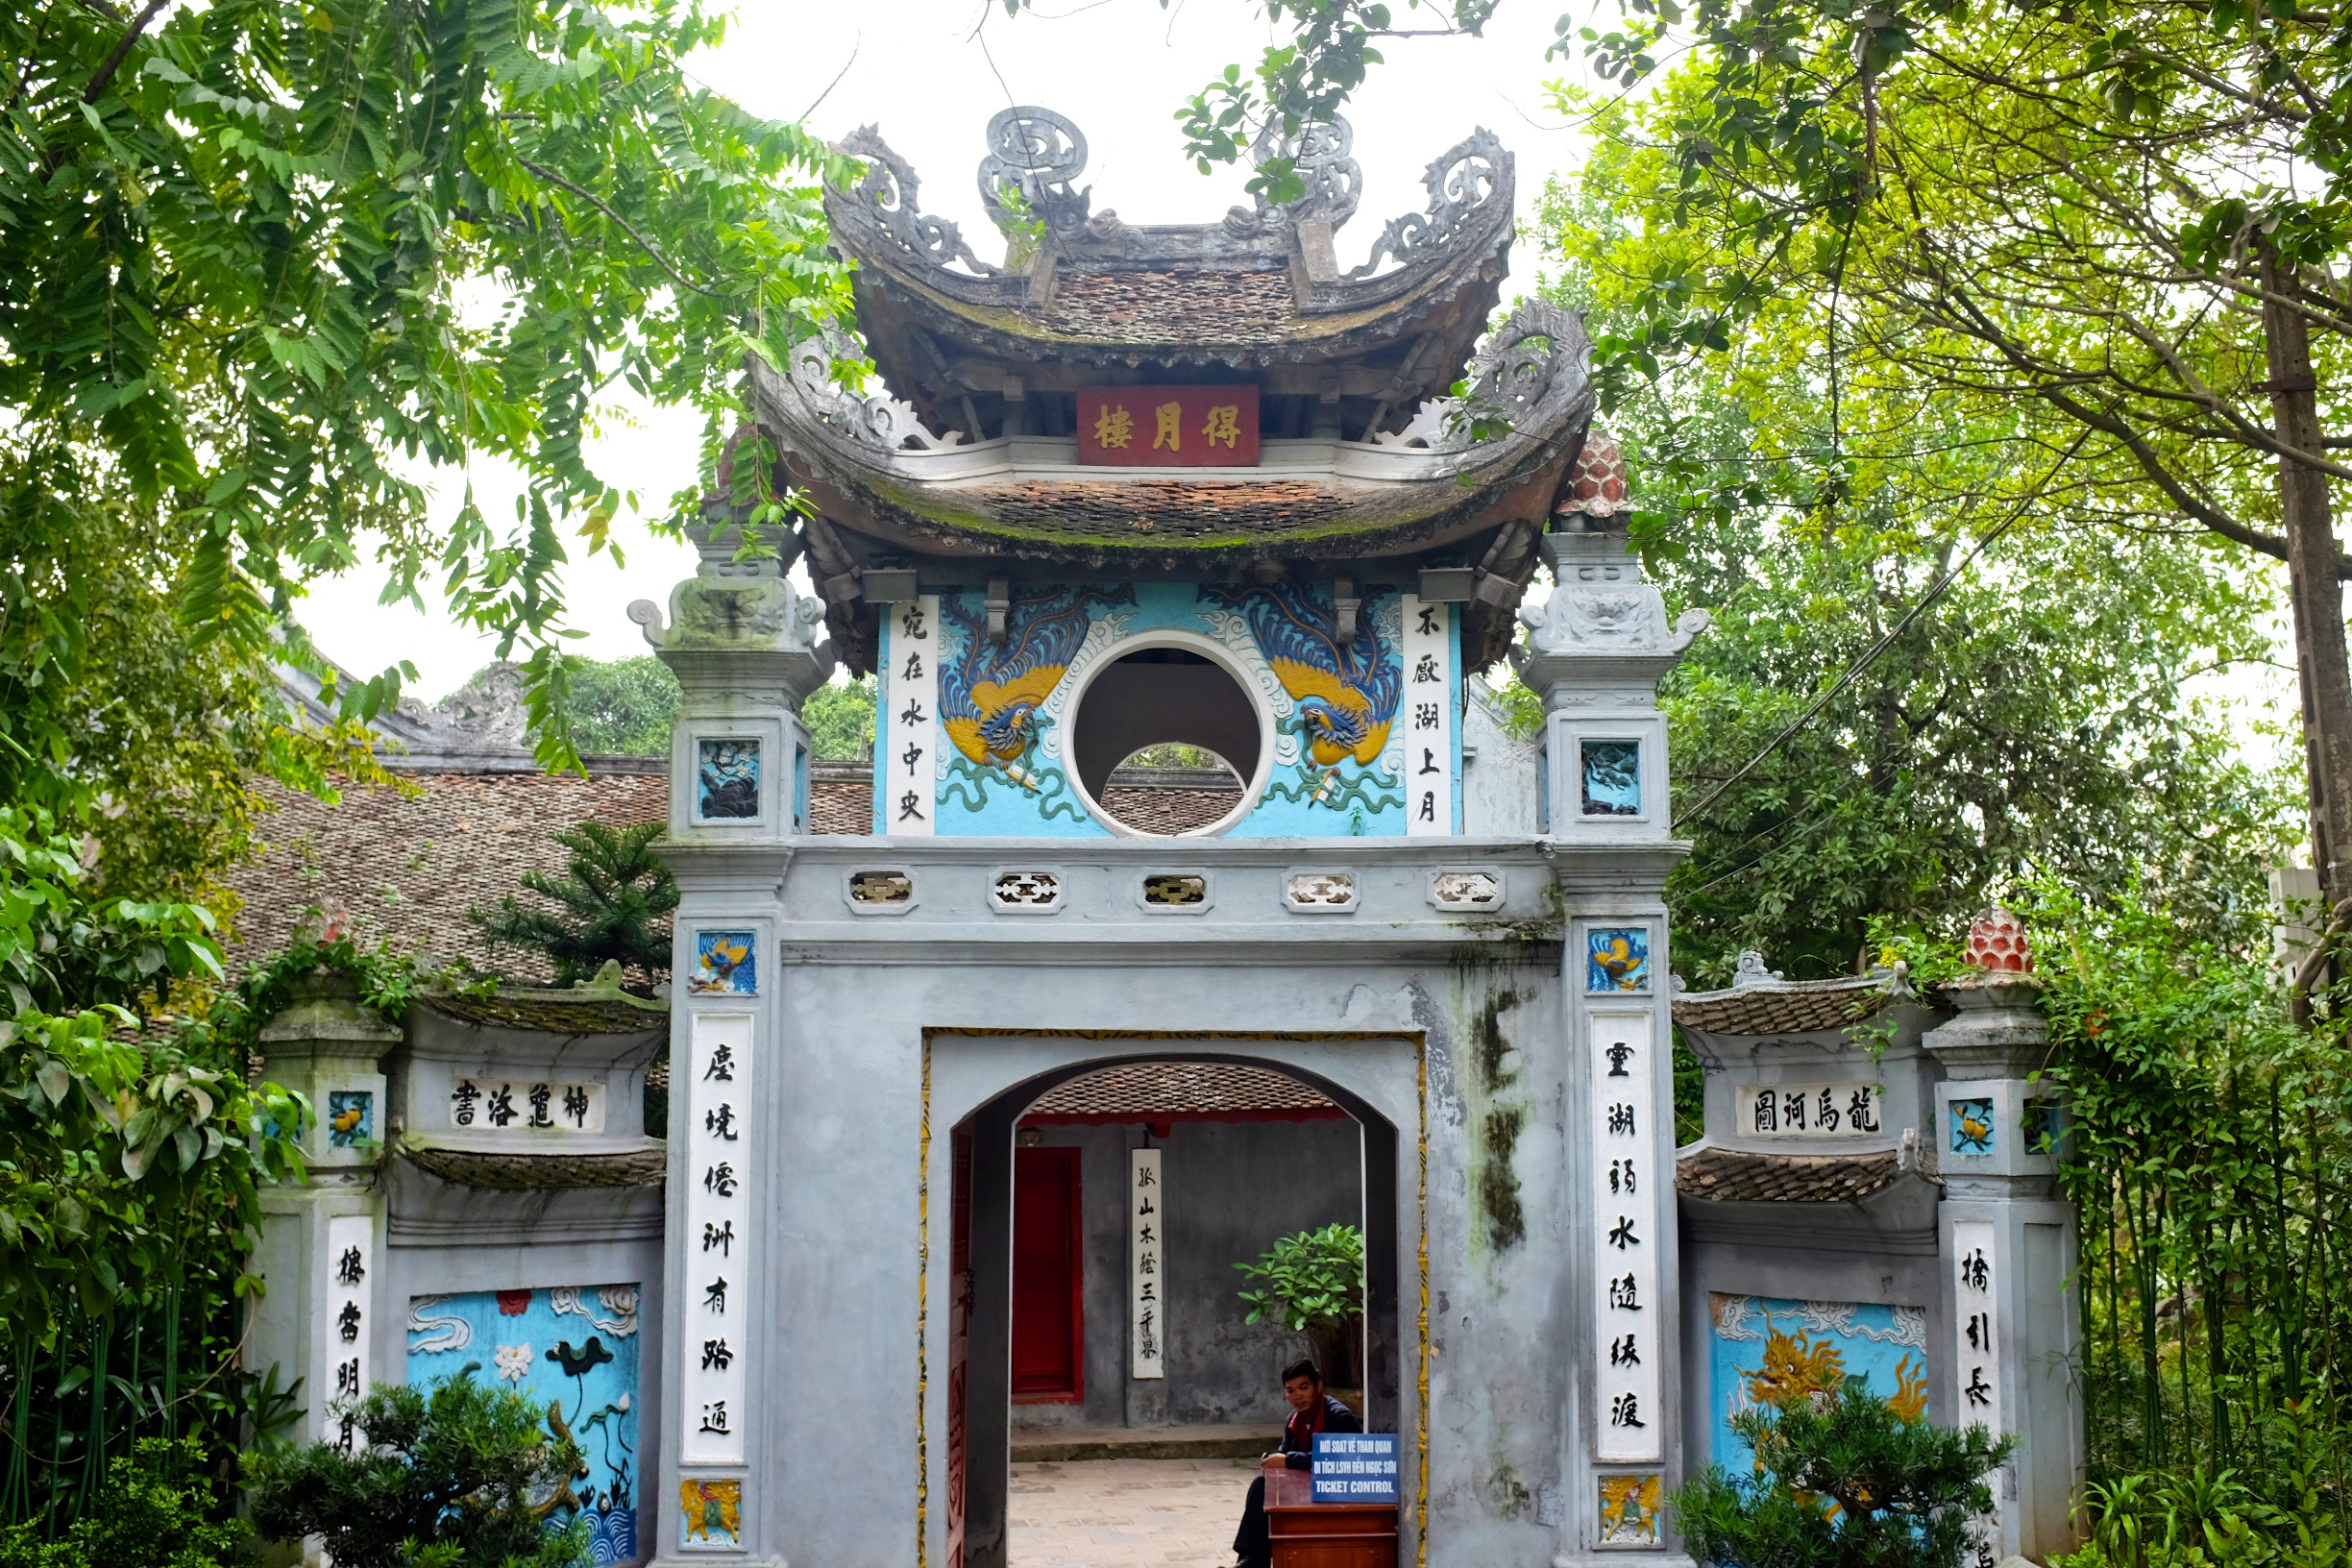 Ngoc Son Temple